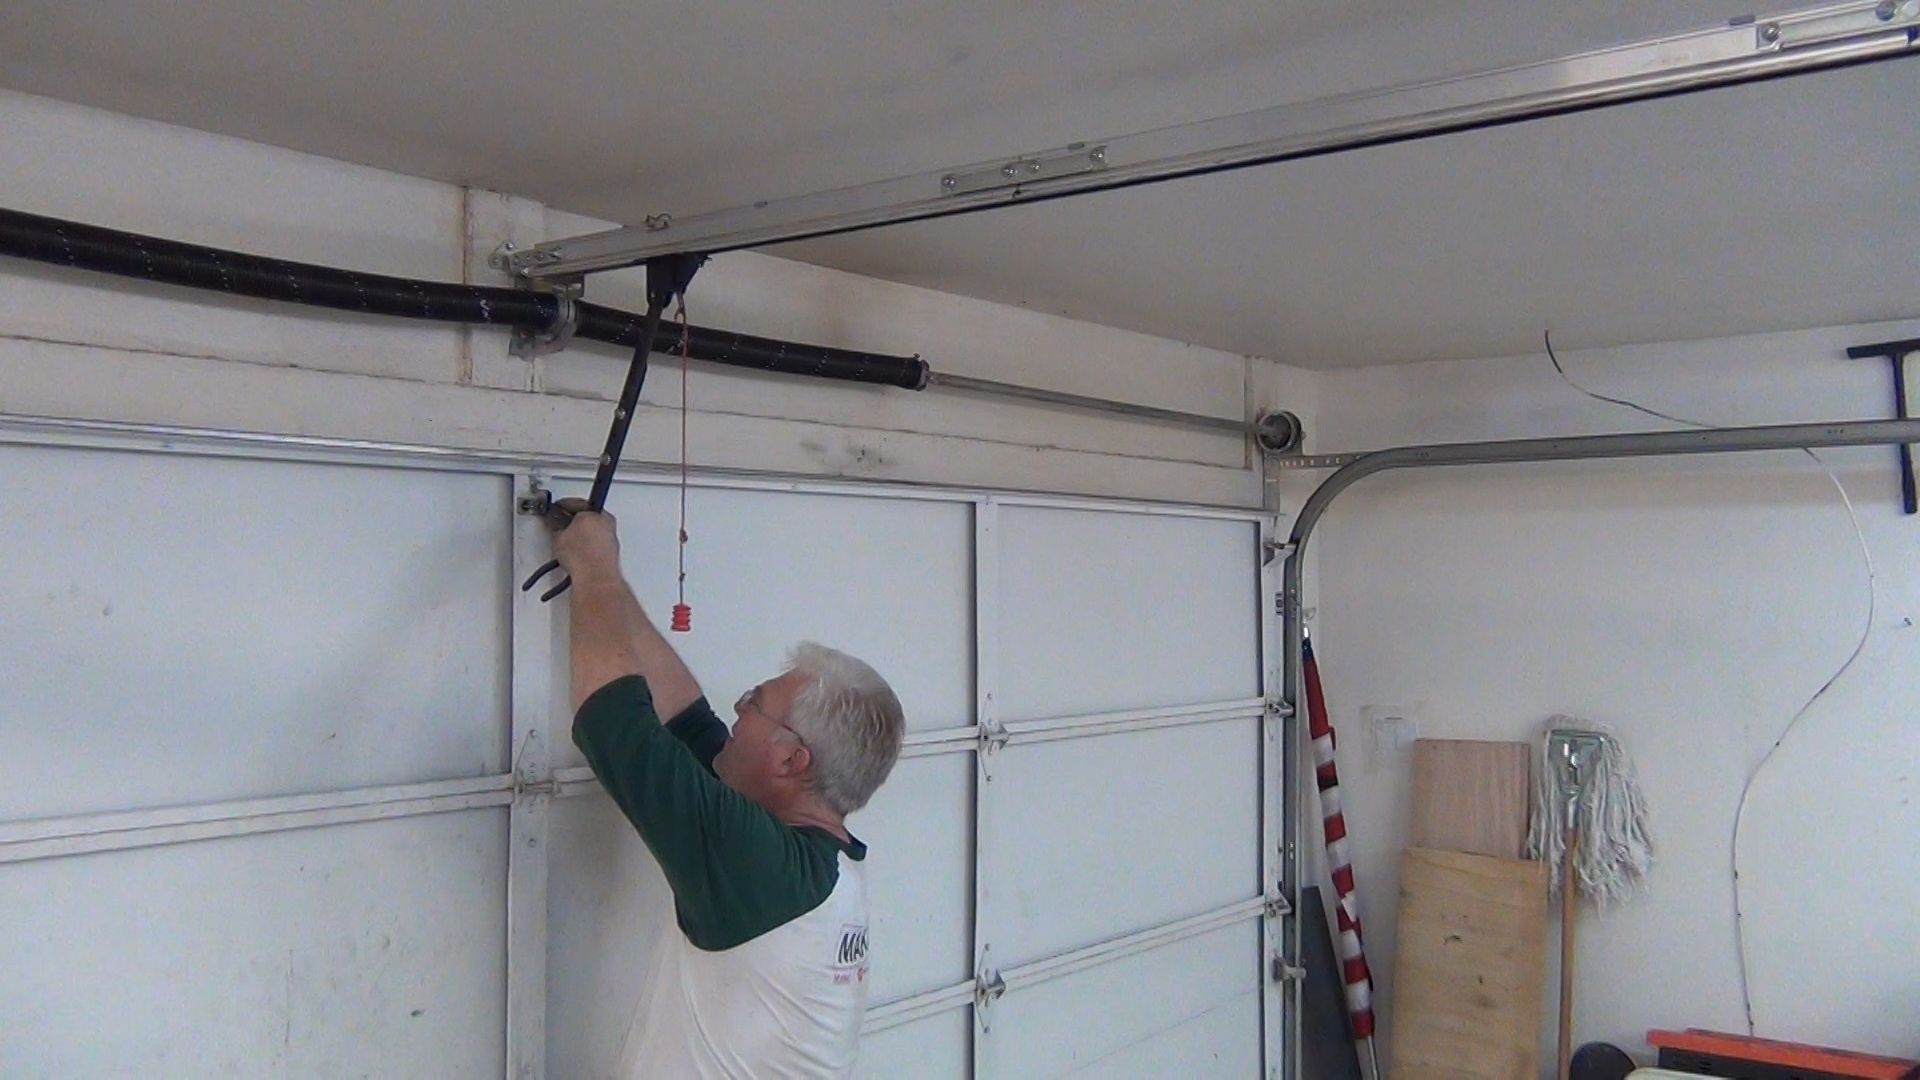 Need a new garage door? Your search ends here. We provide